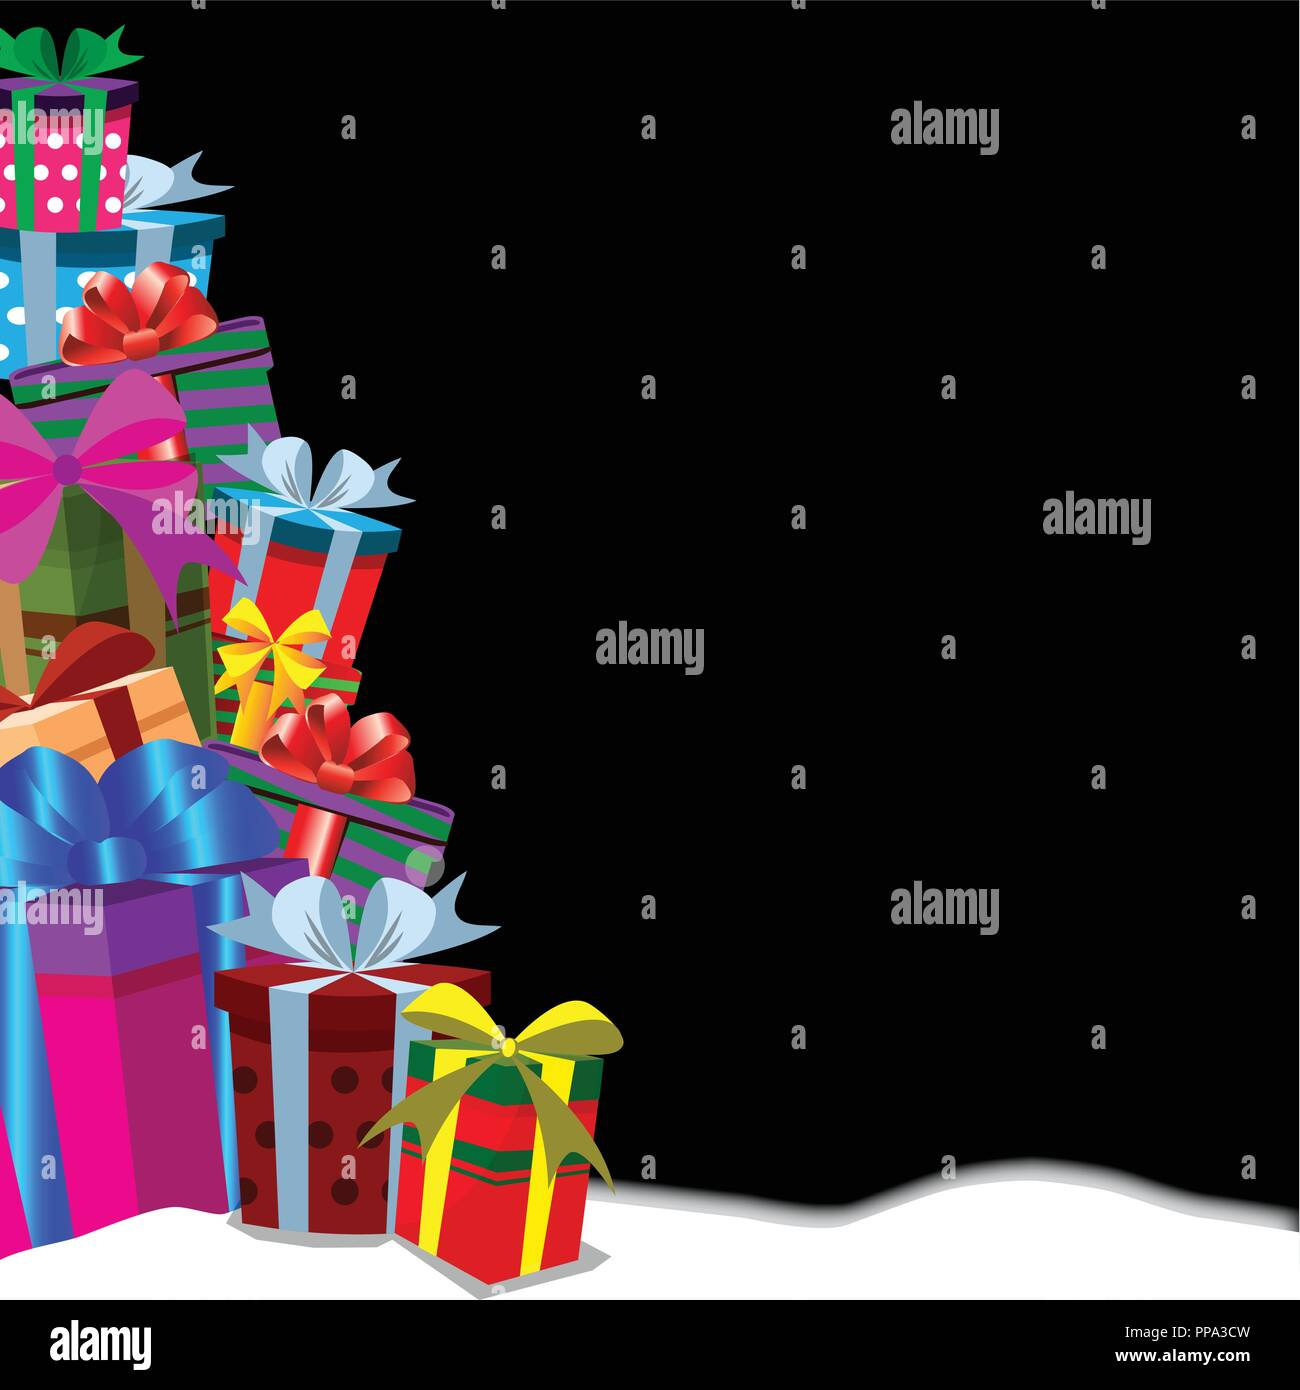 festive holiday background with gifts in traditional holiday style christmas new year valentine birthday anniversary template border of gift boxe